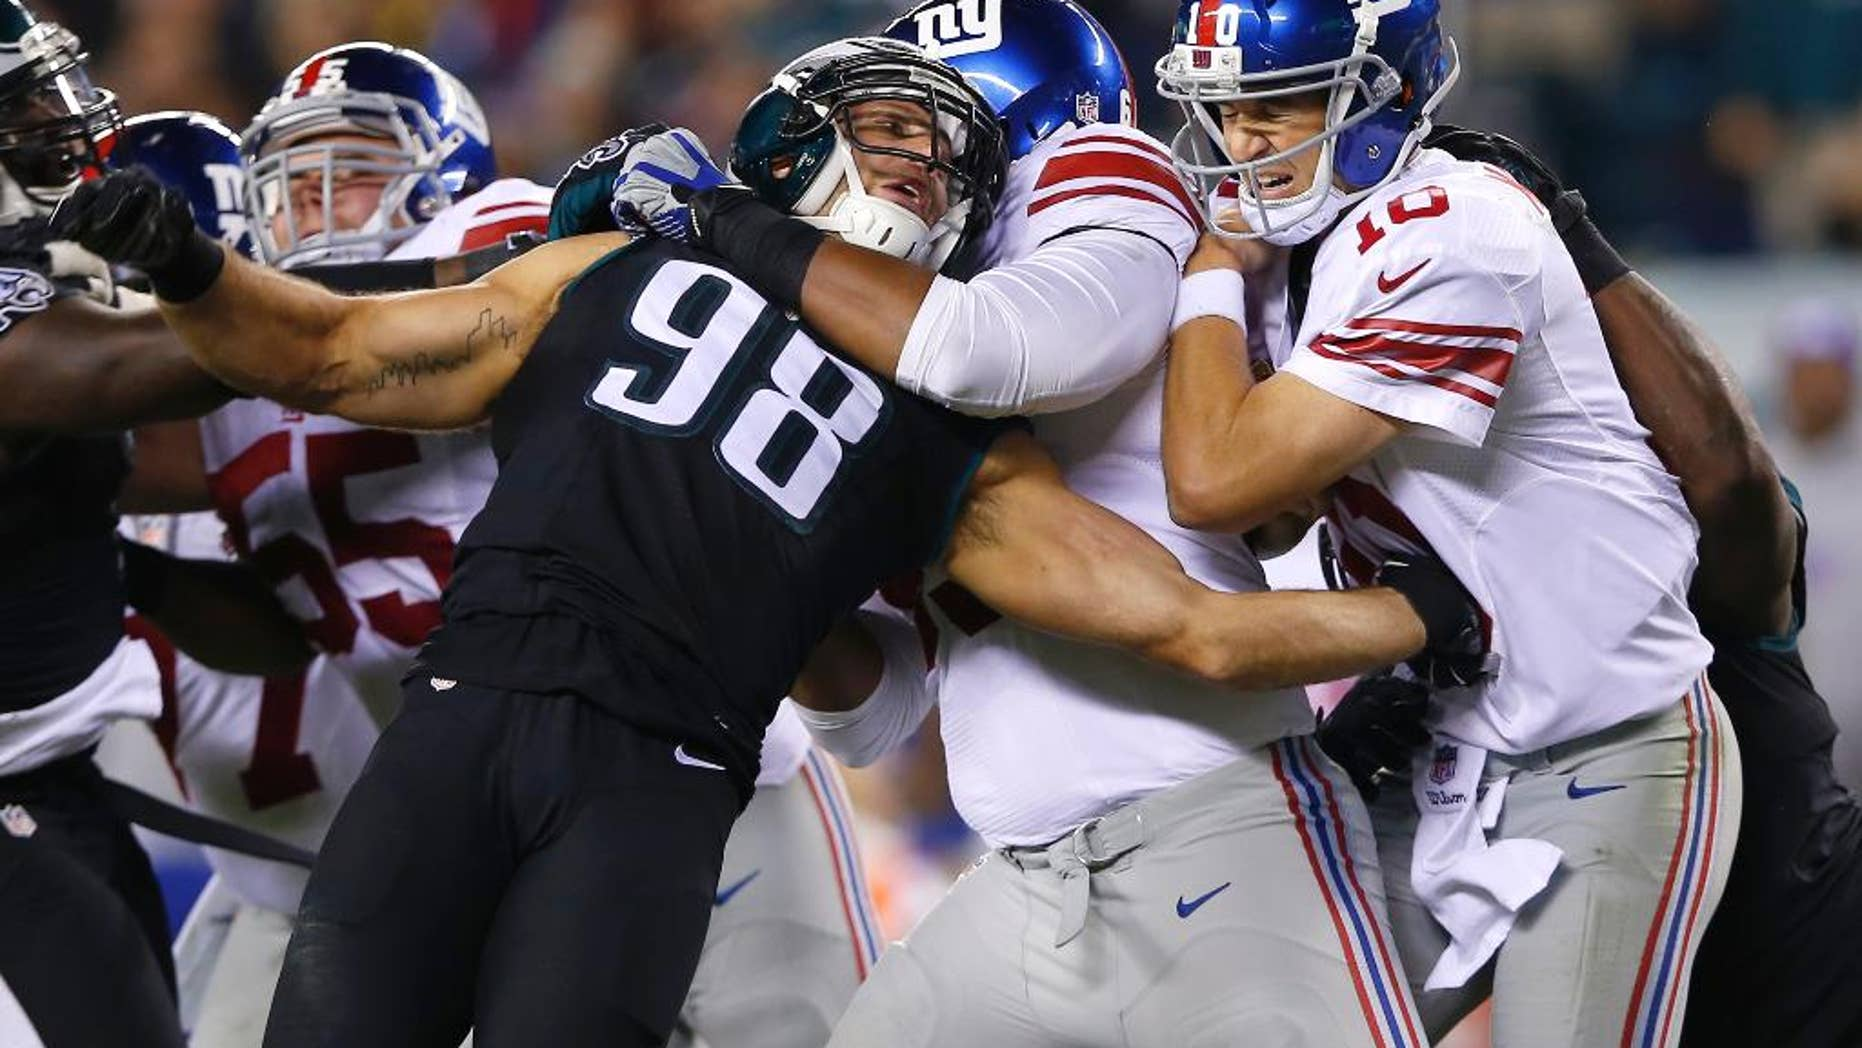 Philadelphia Eagles outside linebacker Connor Barwin (98) is held by New York Giants tackle Will Beatty, center left, as quarterback Eli Manning, center right, is hit by Eagles' Trent Cole, right, after throwing an incomplete pass during the second half of an NFL football game, Sunday, Oct. 12, 2014, in Philadelphia. (AP Photo/Michael Perez)